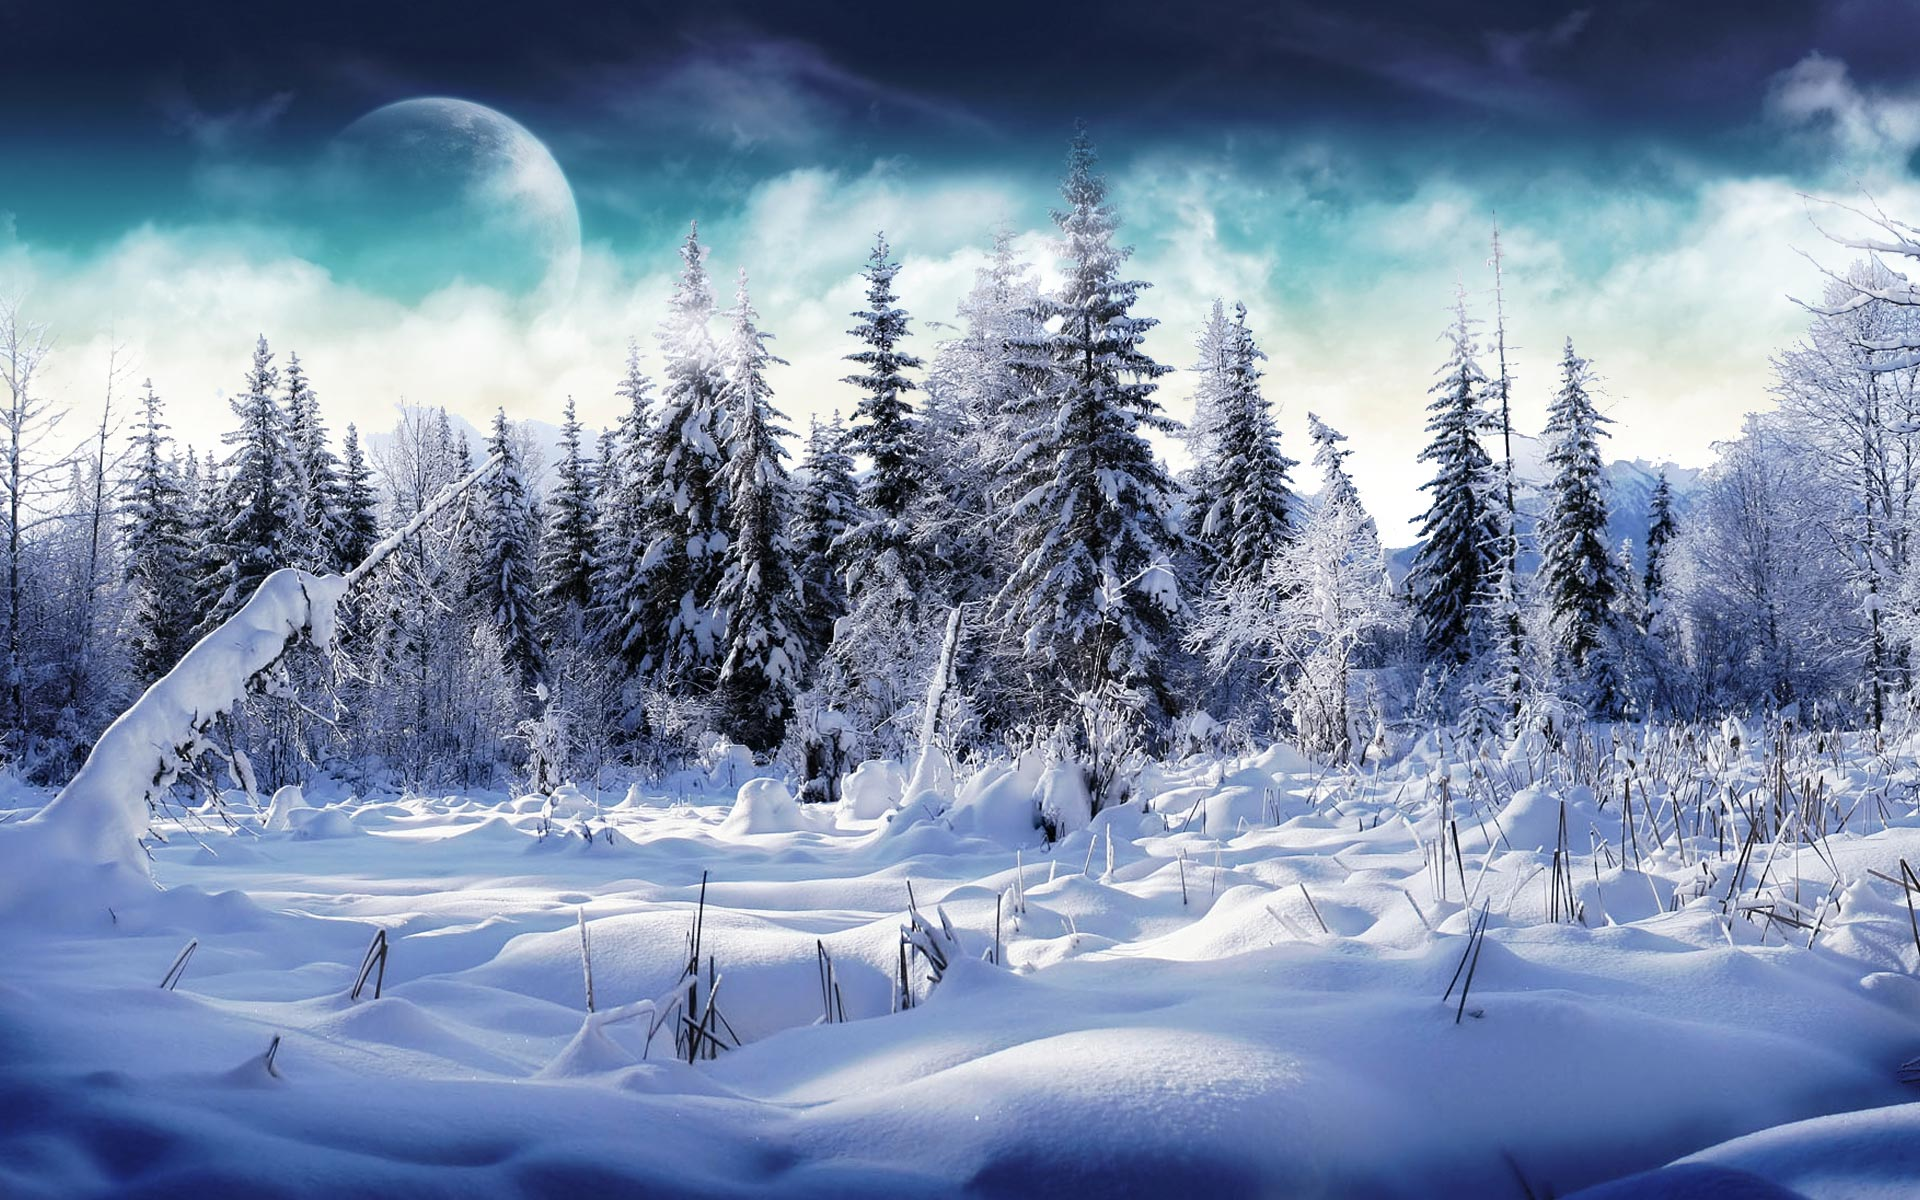 Winter Snowy forest   downloads backgrounds wallpapers 1920x1200